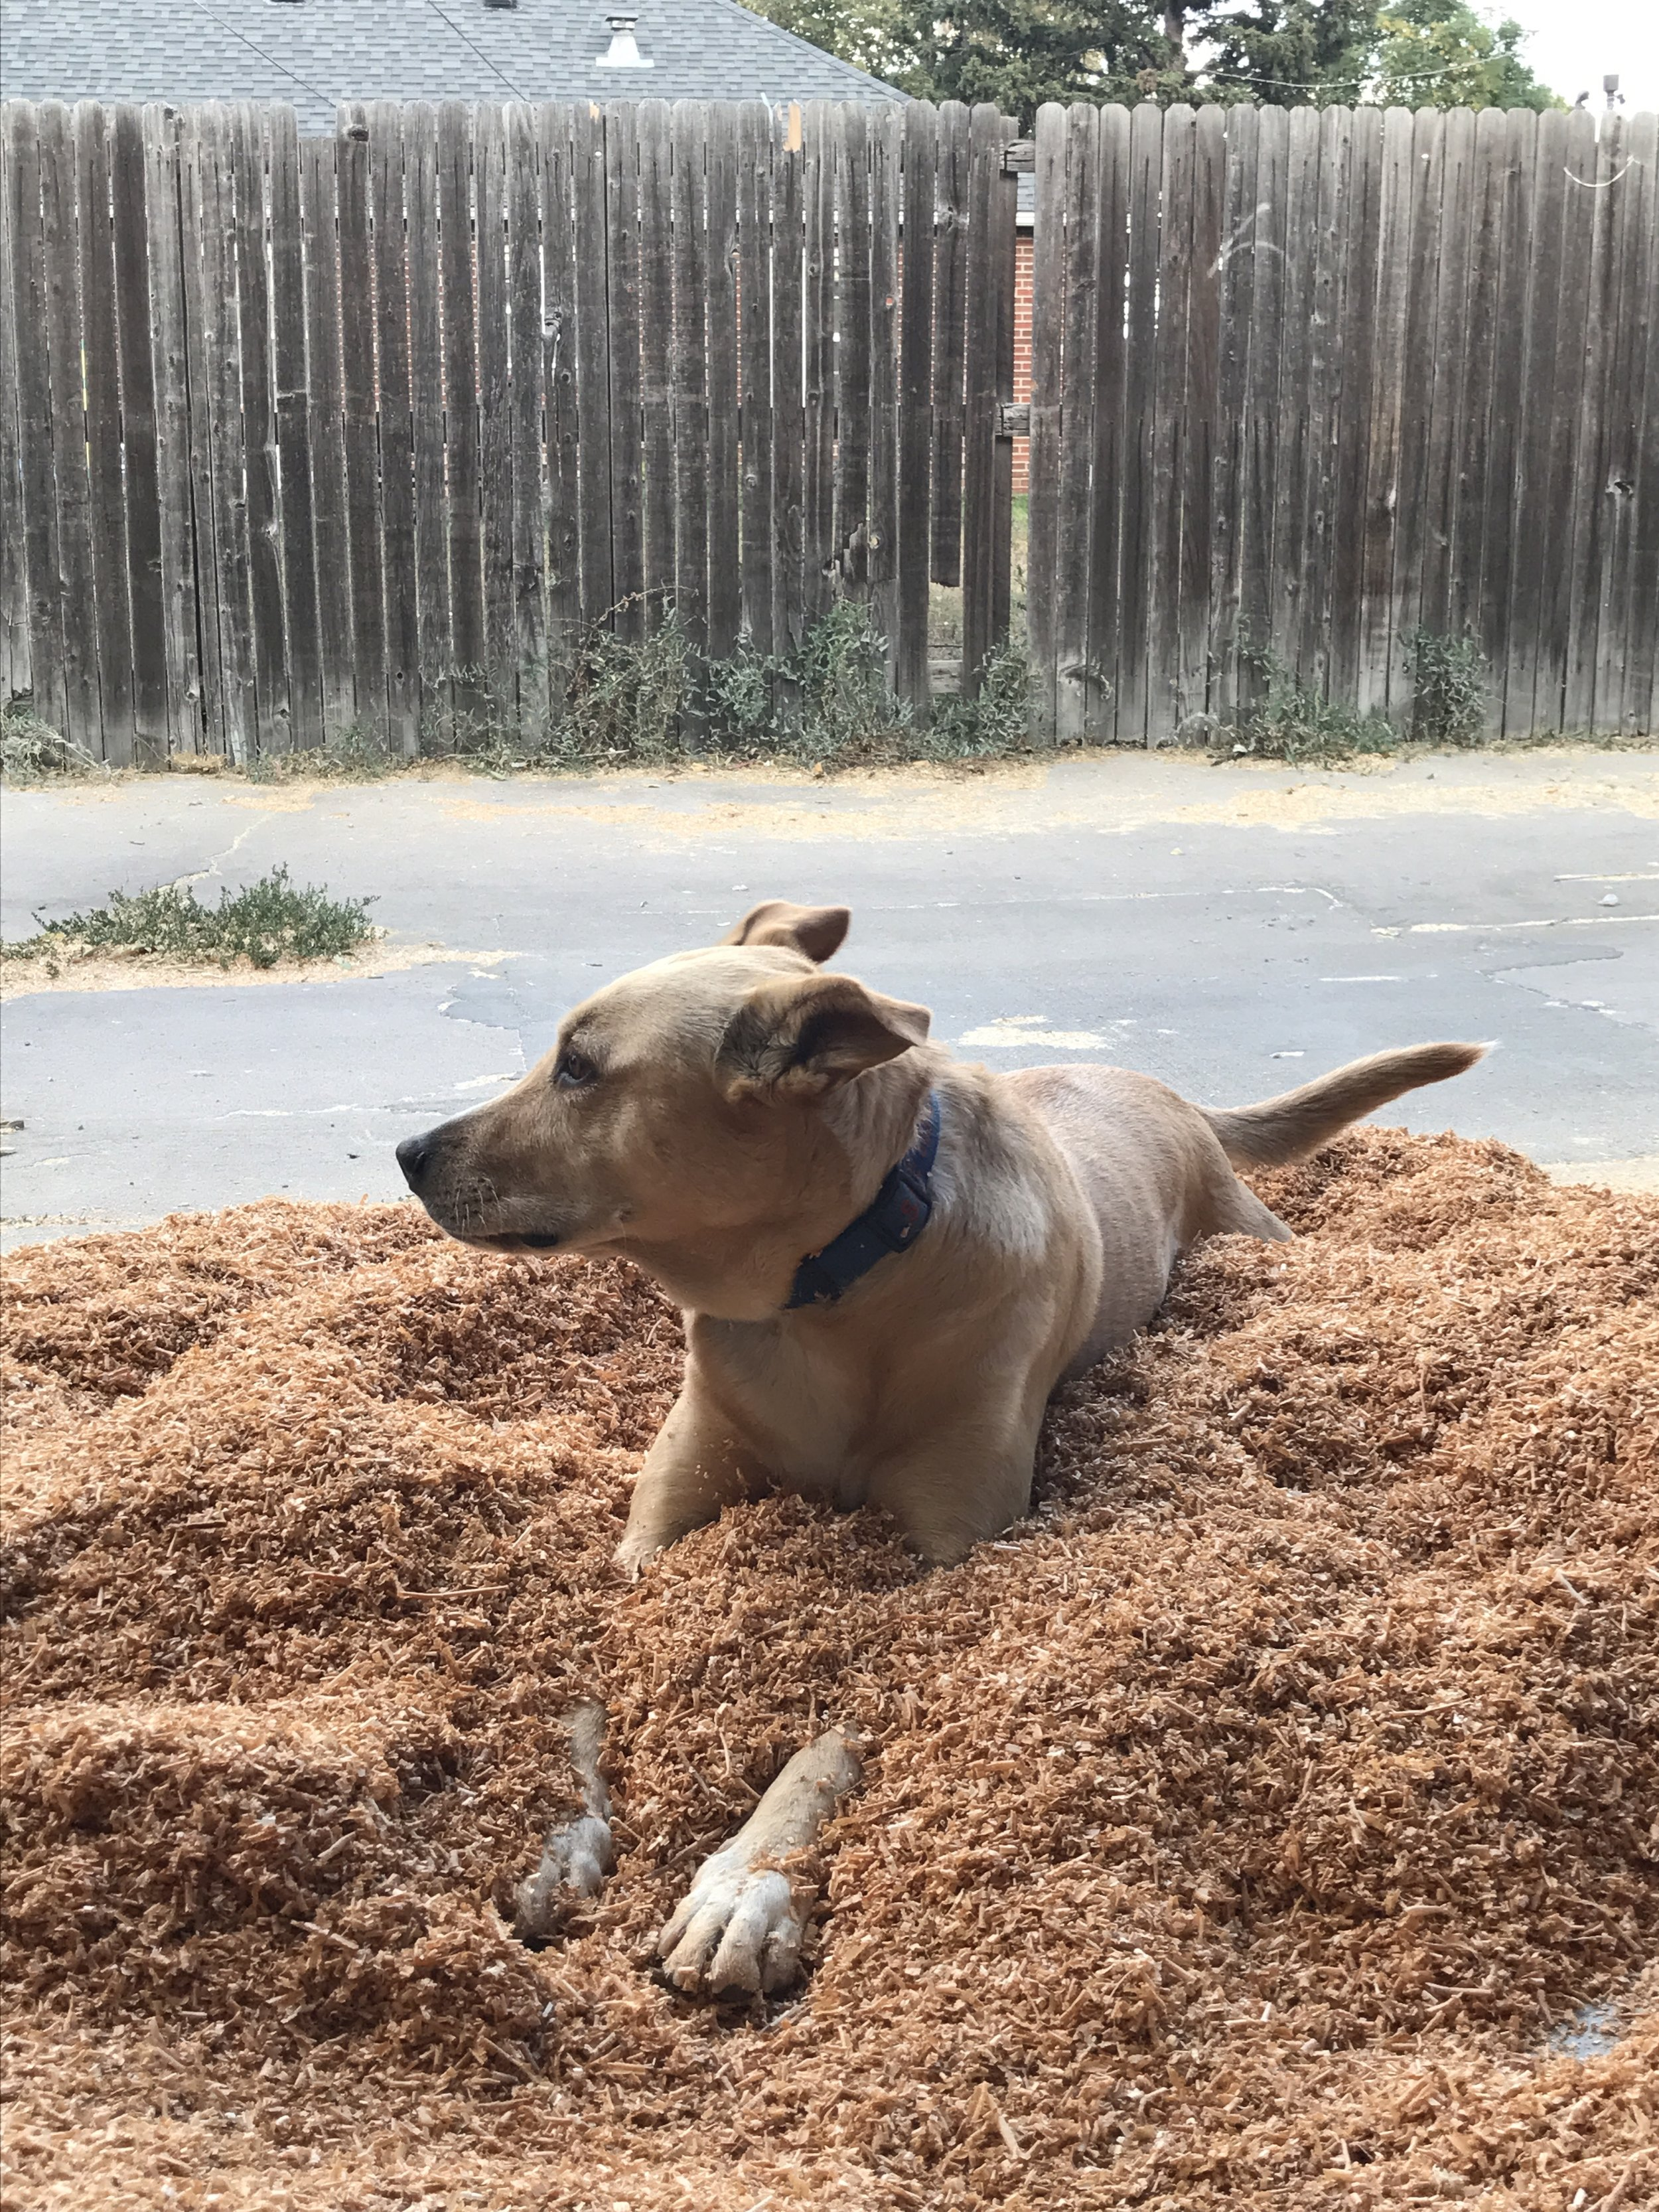 Sager lounging in some planed cedar shavings.